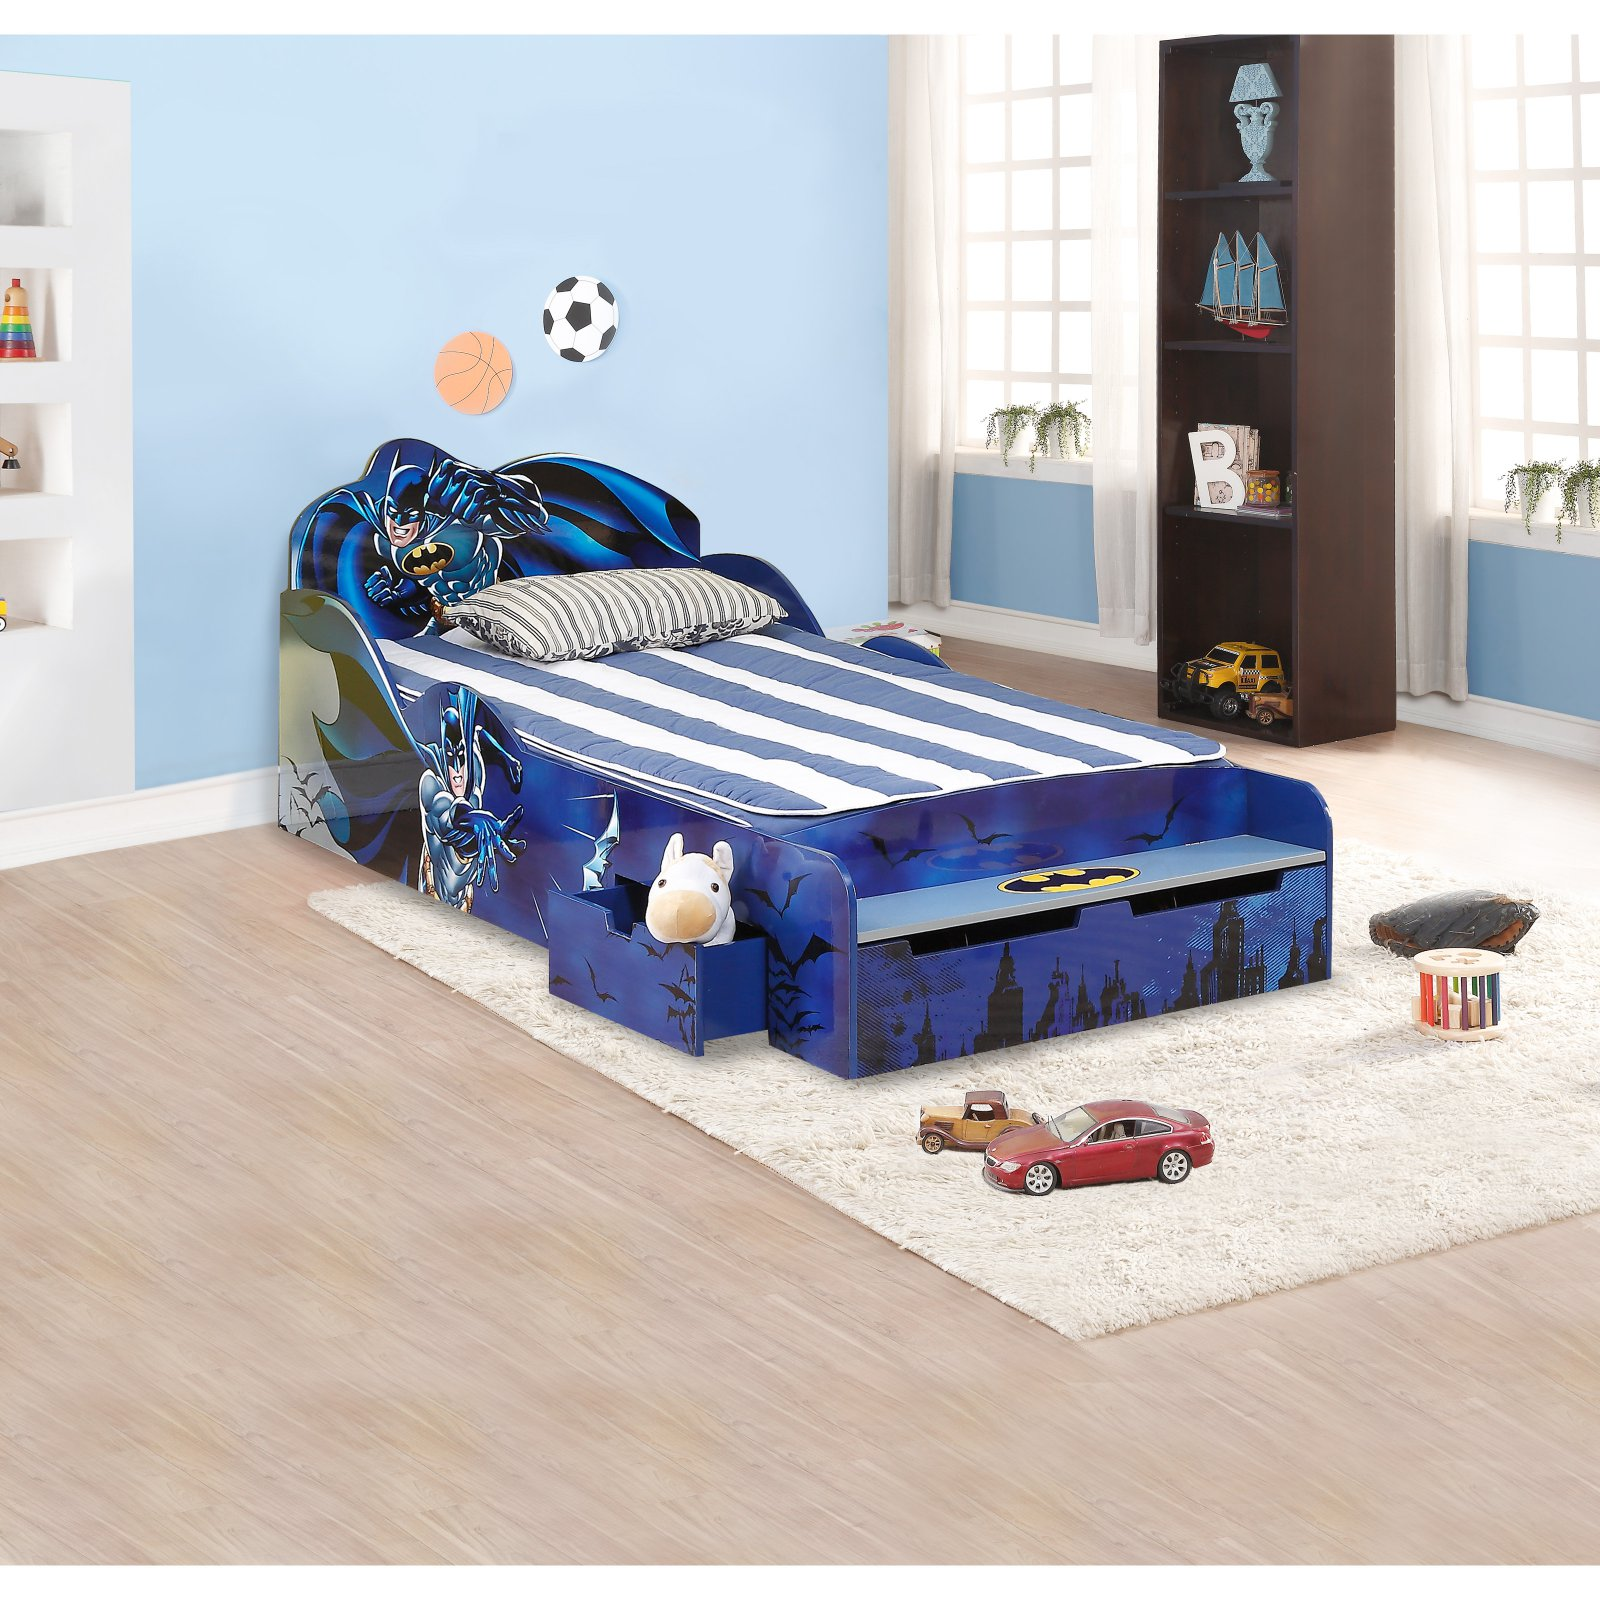 okids batman childrens twin bed